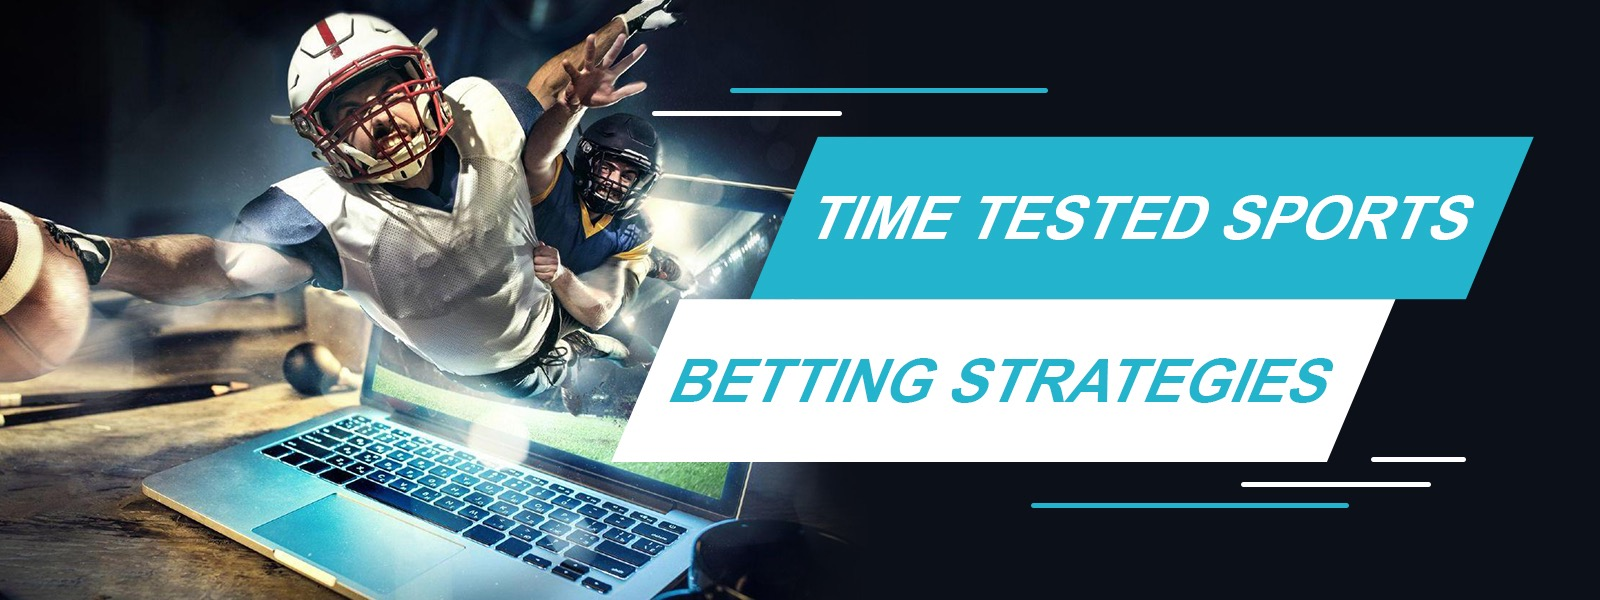 Time-Tested Sports Betting Strategies